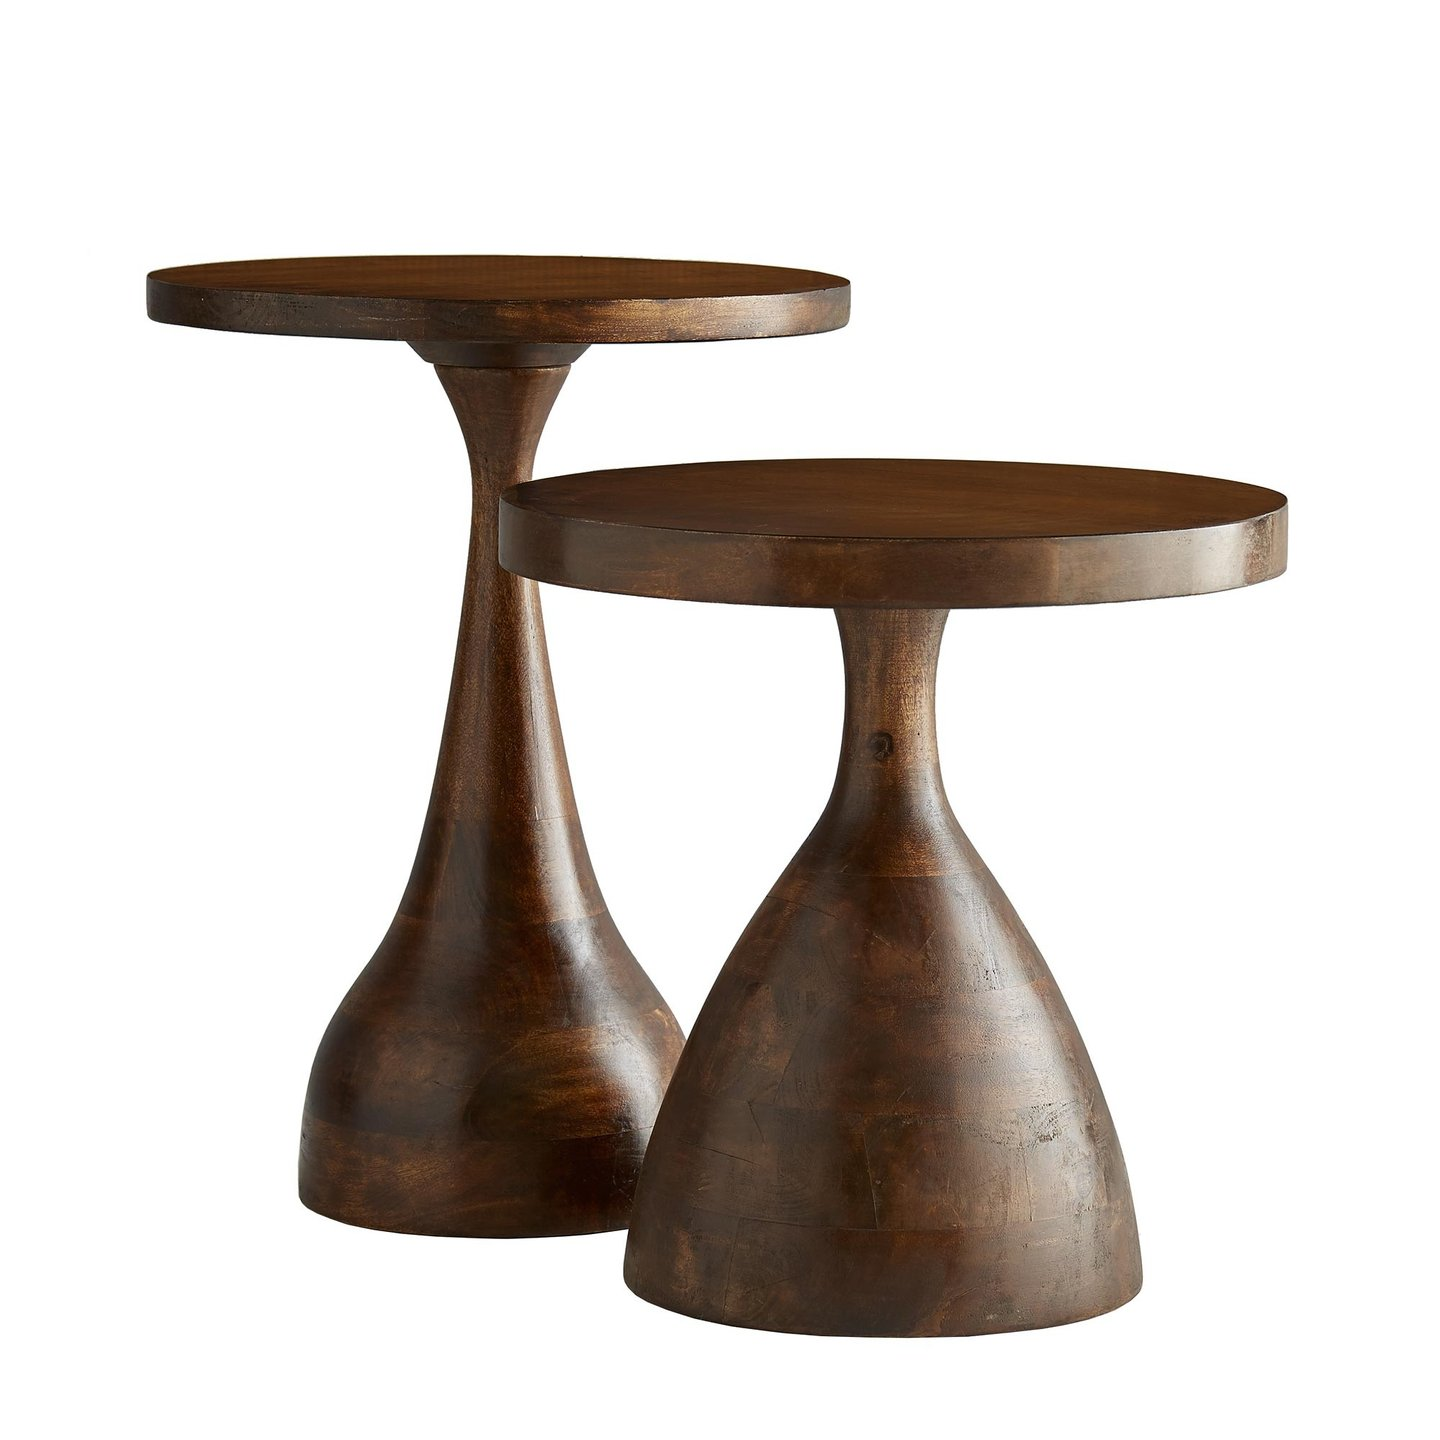 arteriors end table tops home darby accent duo zebi wood round teardrop antique hand carved coffee hobby lobby console tablet con usb waterproof cover for garden and chairs ikea